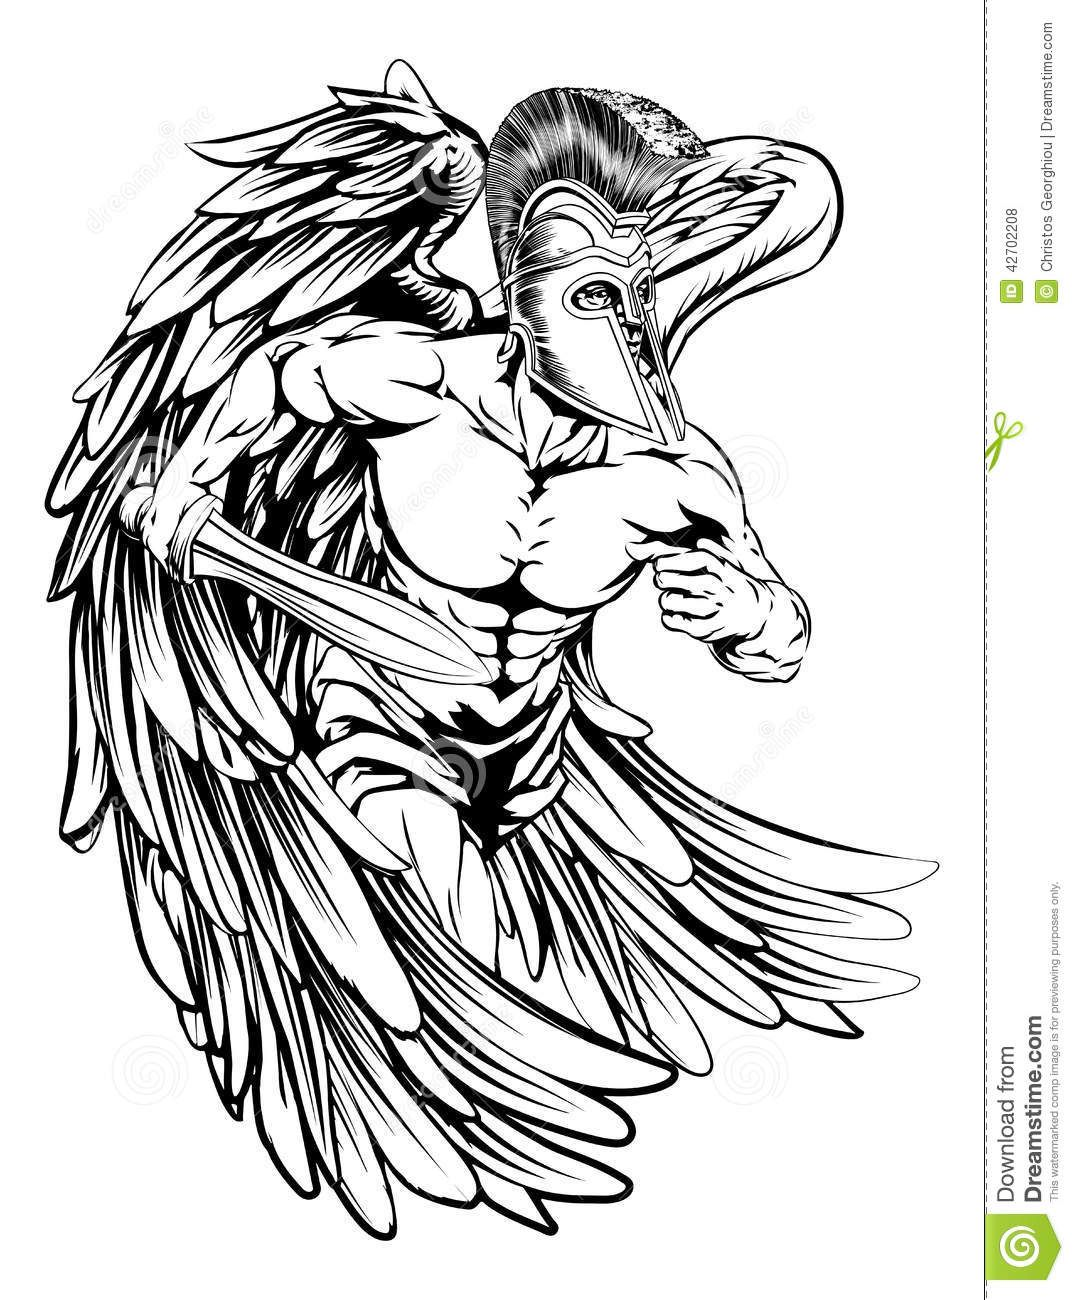 28 Angel Drawings Free Drawings Download: Angel With Sword Stock Vector - Image: 42702208